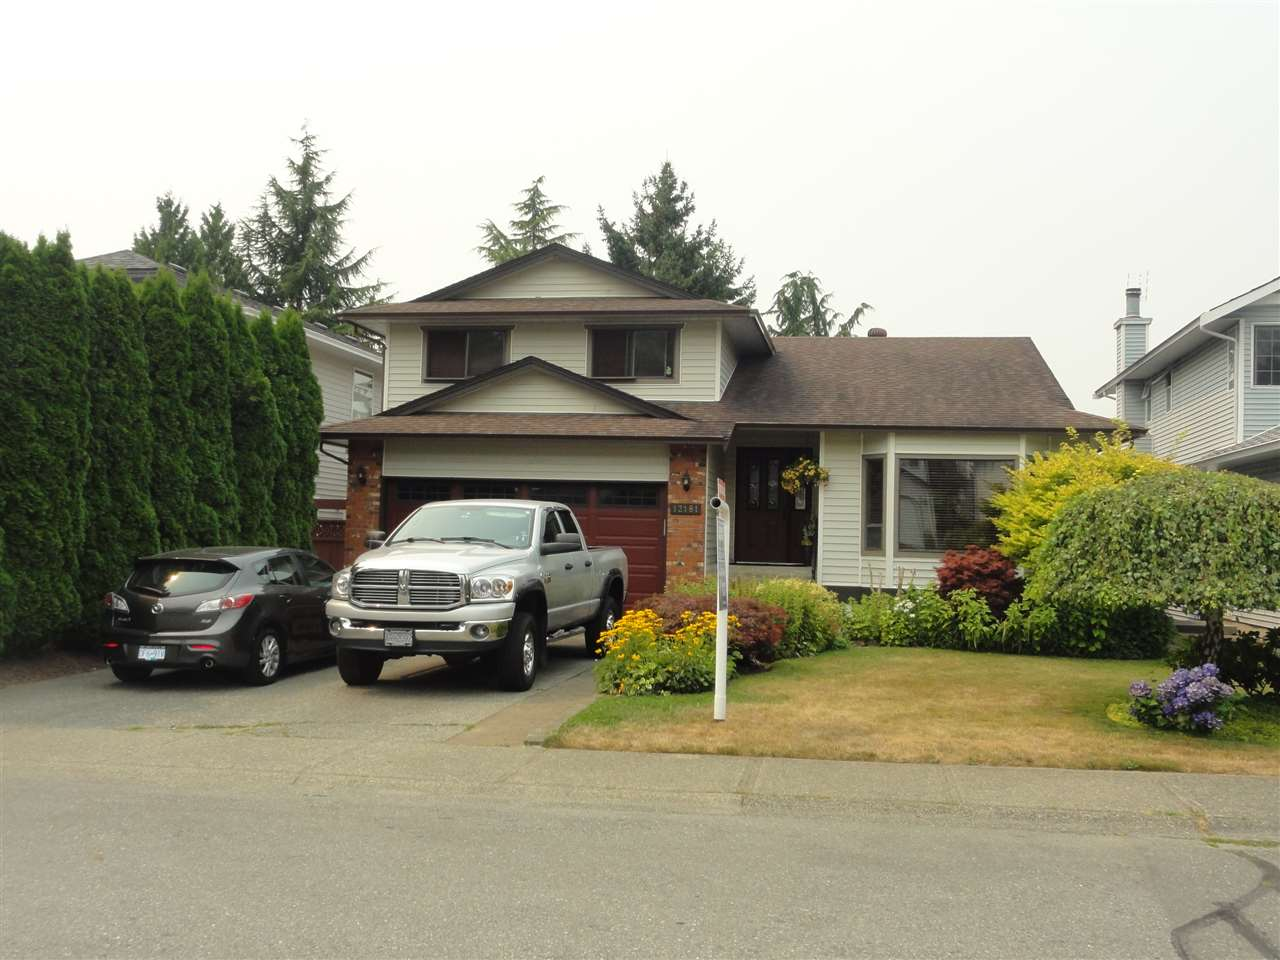 WESTSIDE split level with basement, this area does not come up for often, home features sunken living room with gas feature F/P adjoining dining area. Spacious oak/granite kitchen with eating area and access to covered 15x16 deck, down to the family room which has approved woodstove and access to 19x15 deck, 3 pc bathroom and laundry on this level as well. Up has 3 bedrooms 5 pc main bath master has a 3 pc ensuite and W/I closet bathroom updates 3 years ago, basement is waiting for your ideas has separate entrance (no stairs), French doors to a covered 16x14 patio. 5 crawl for storage, backyard is fenced with 11x9 shed and very private. Great family area close to all levels of schools, shopping and freeway access very close.